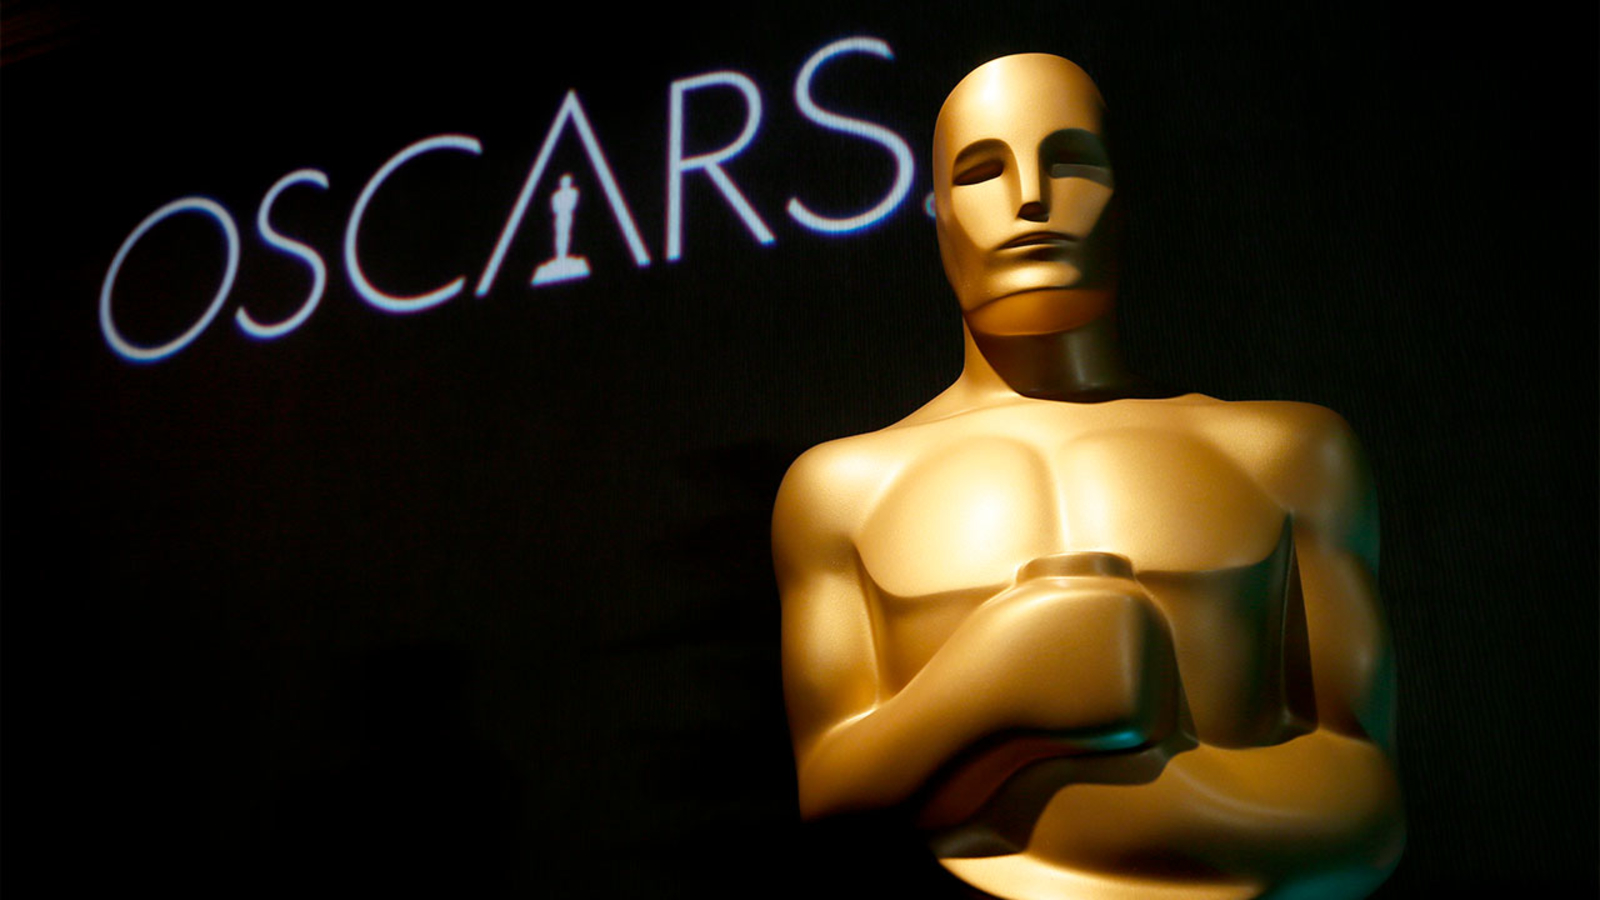 Everything to know about 2021 Oscars: Date, hosts, nominees & more for Academy Awards on ABC